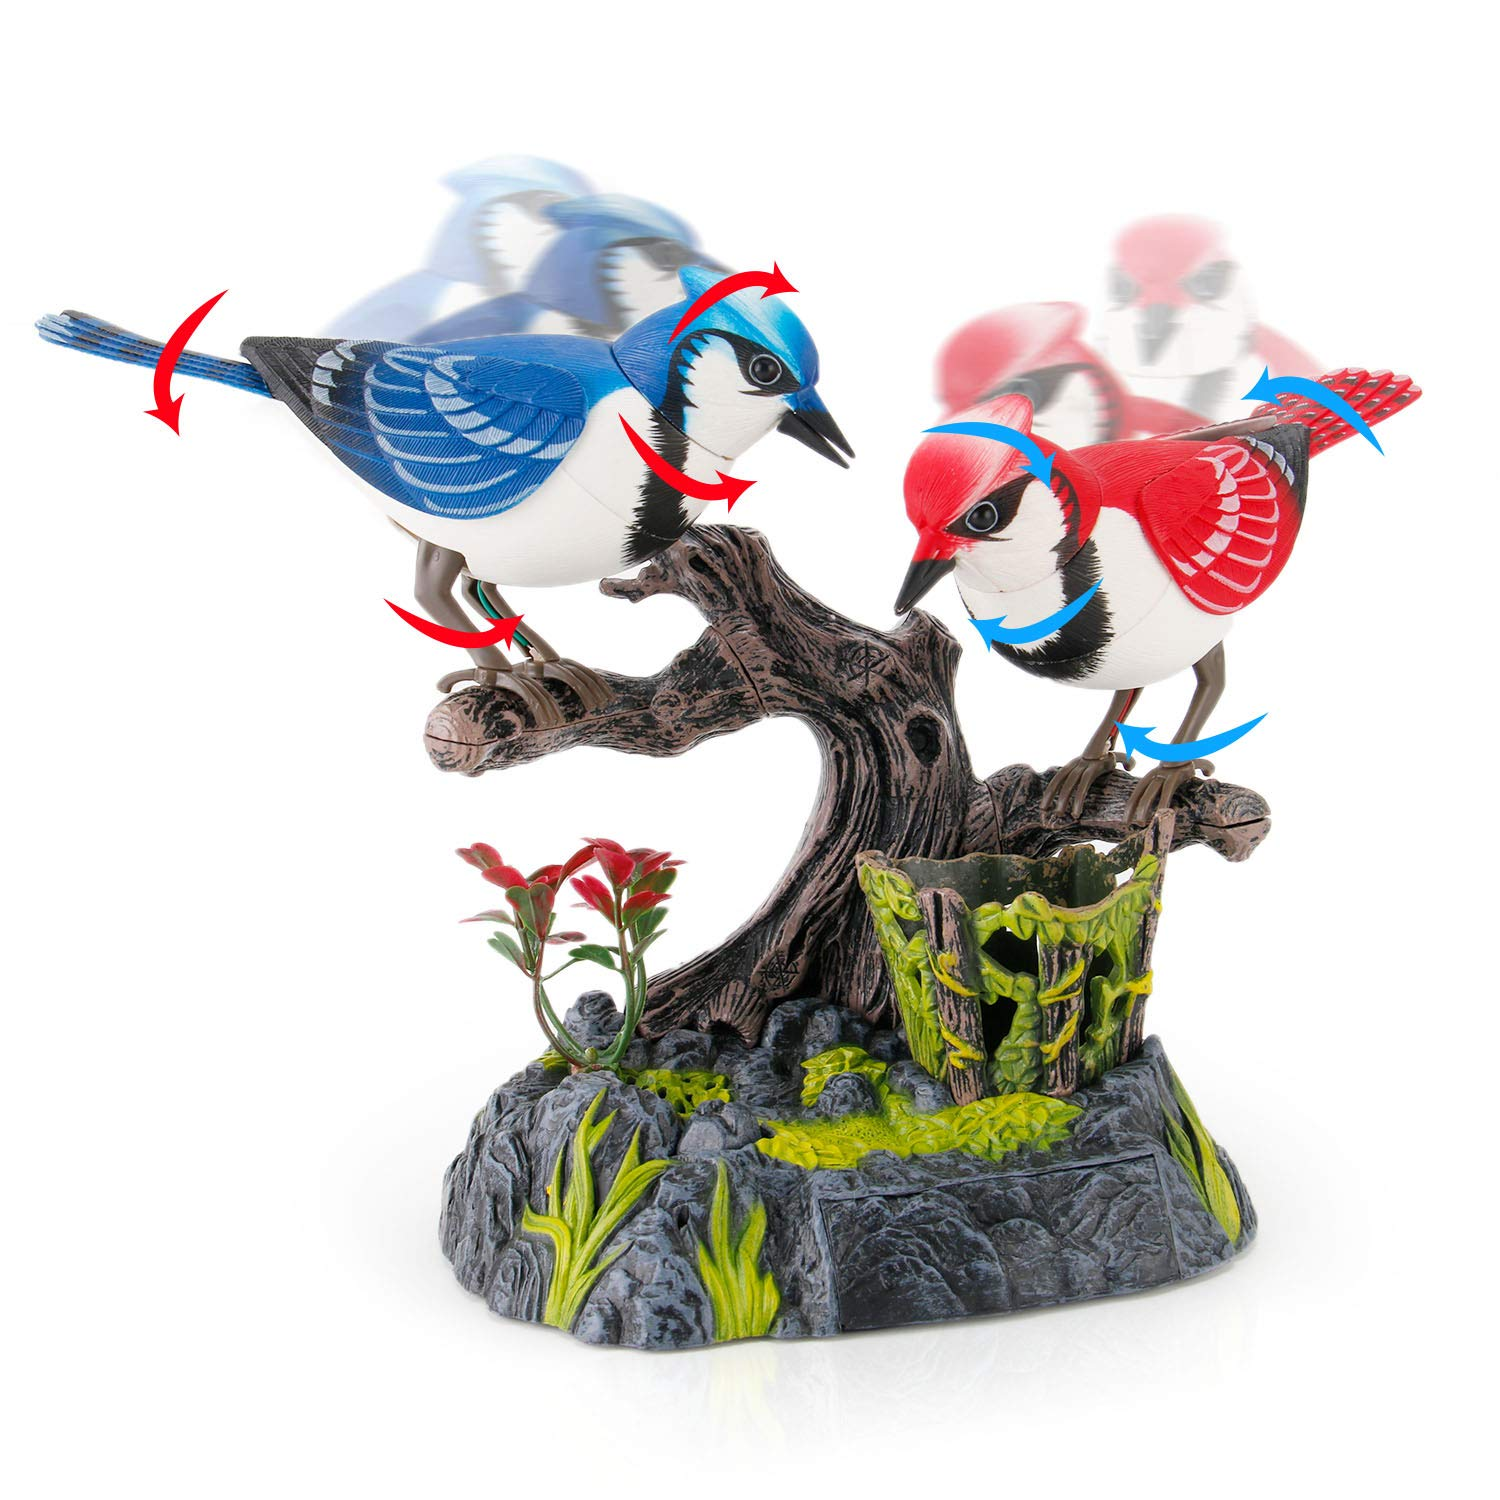 Liberty Imports Singing and Chirping Birds - Realistic Sounds and Movements (Blue Jays) by Liberty Imports (Image #4)